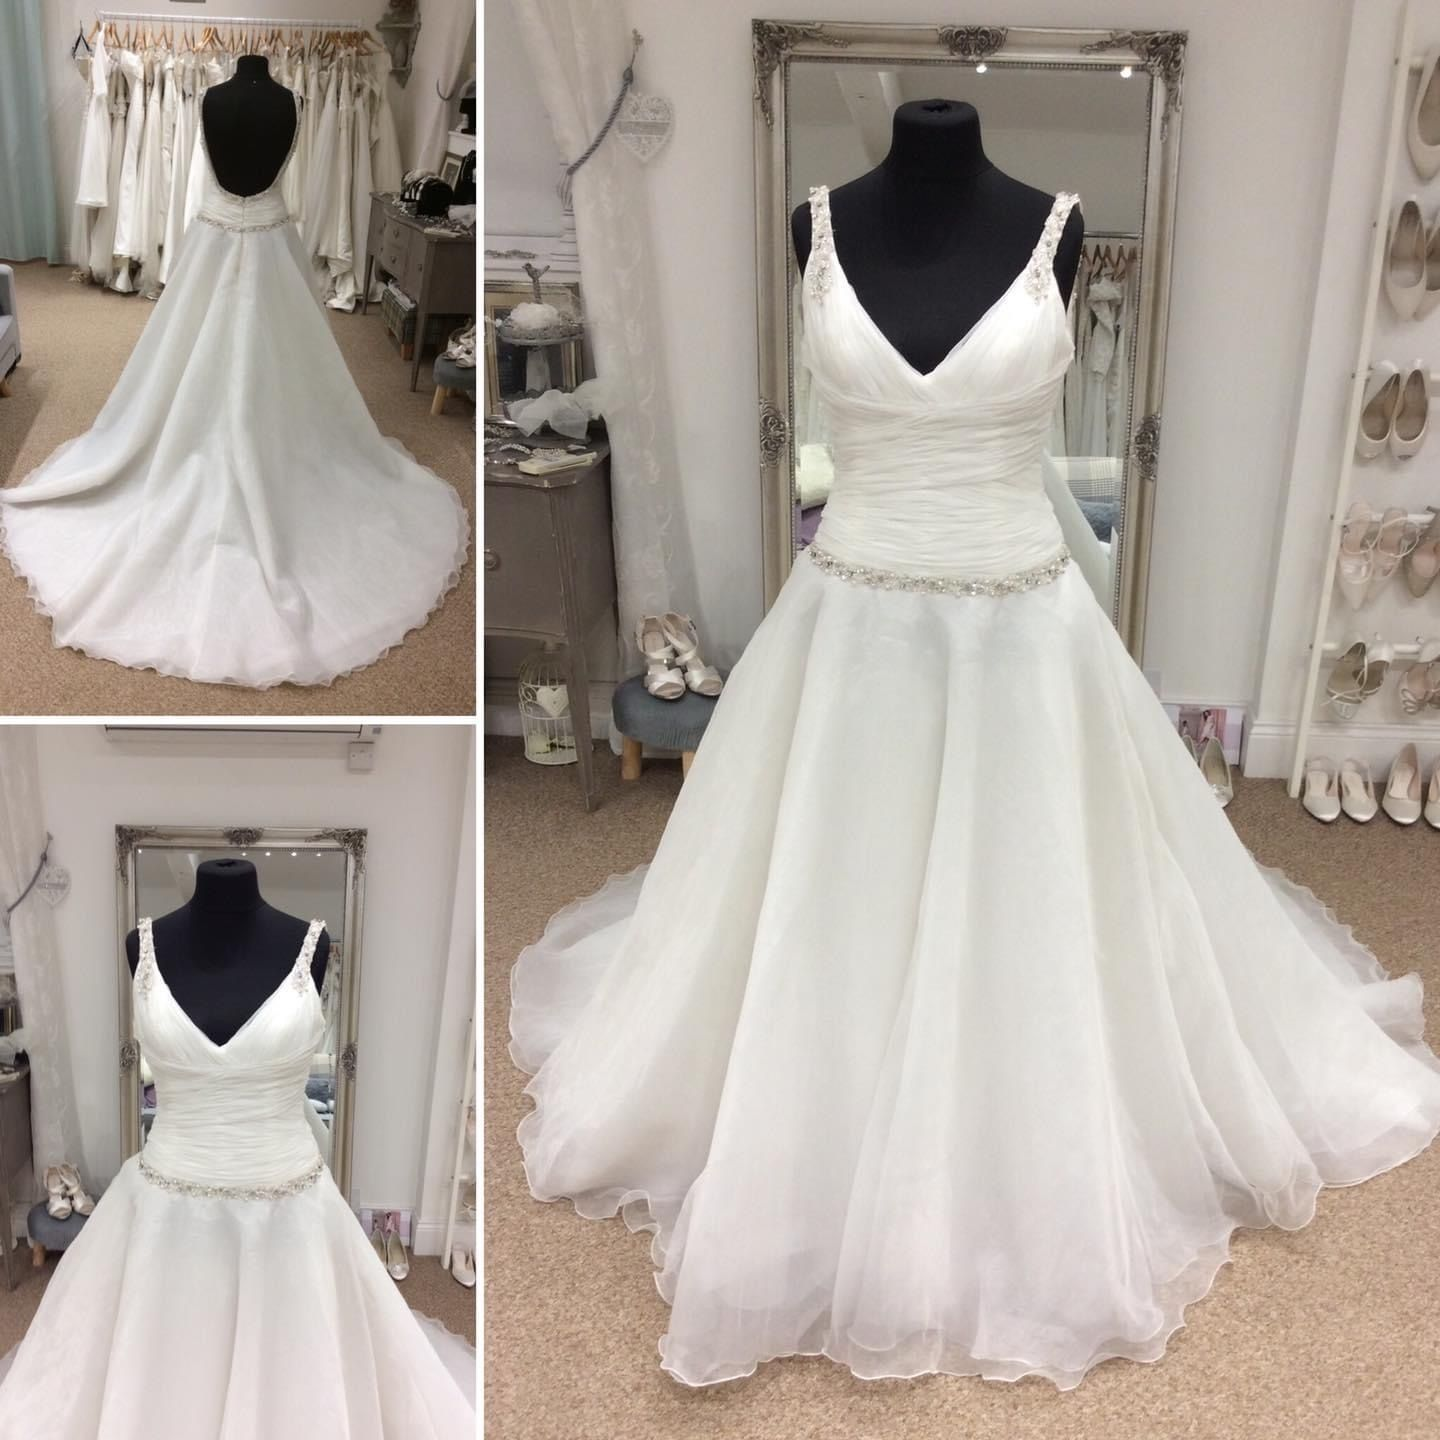 Wedding Dress In 2020 Dresses A Line Wedding Dress Wedding Dresses